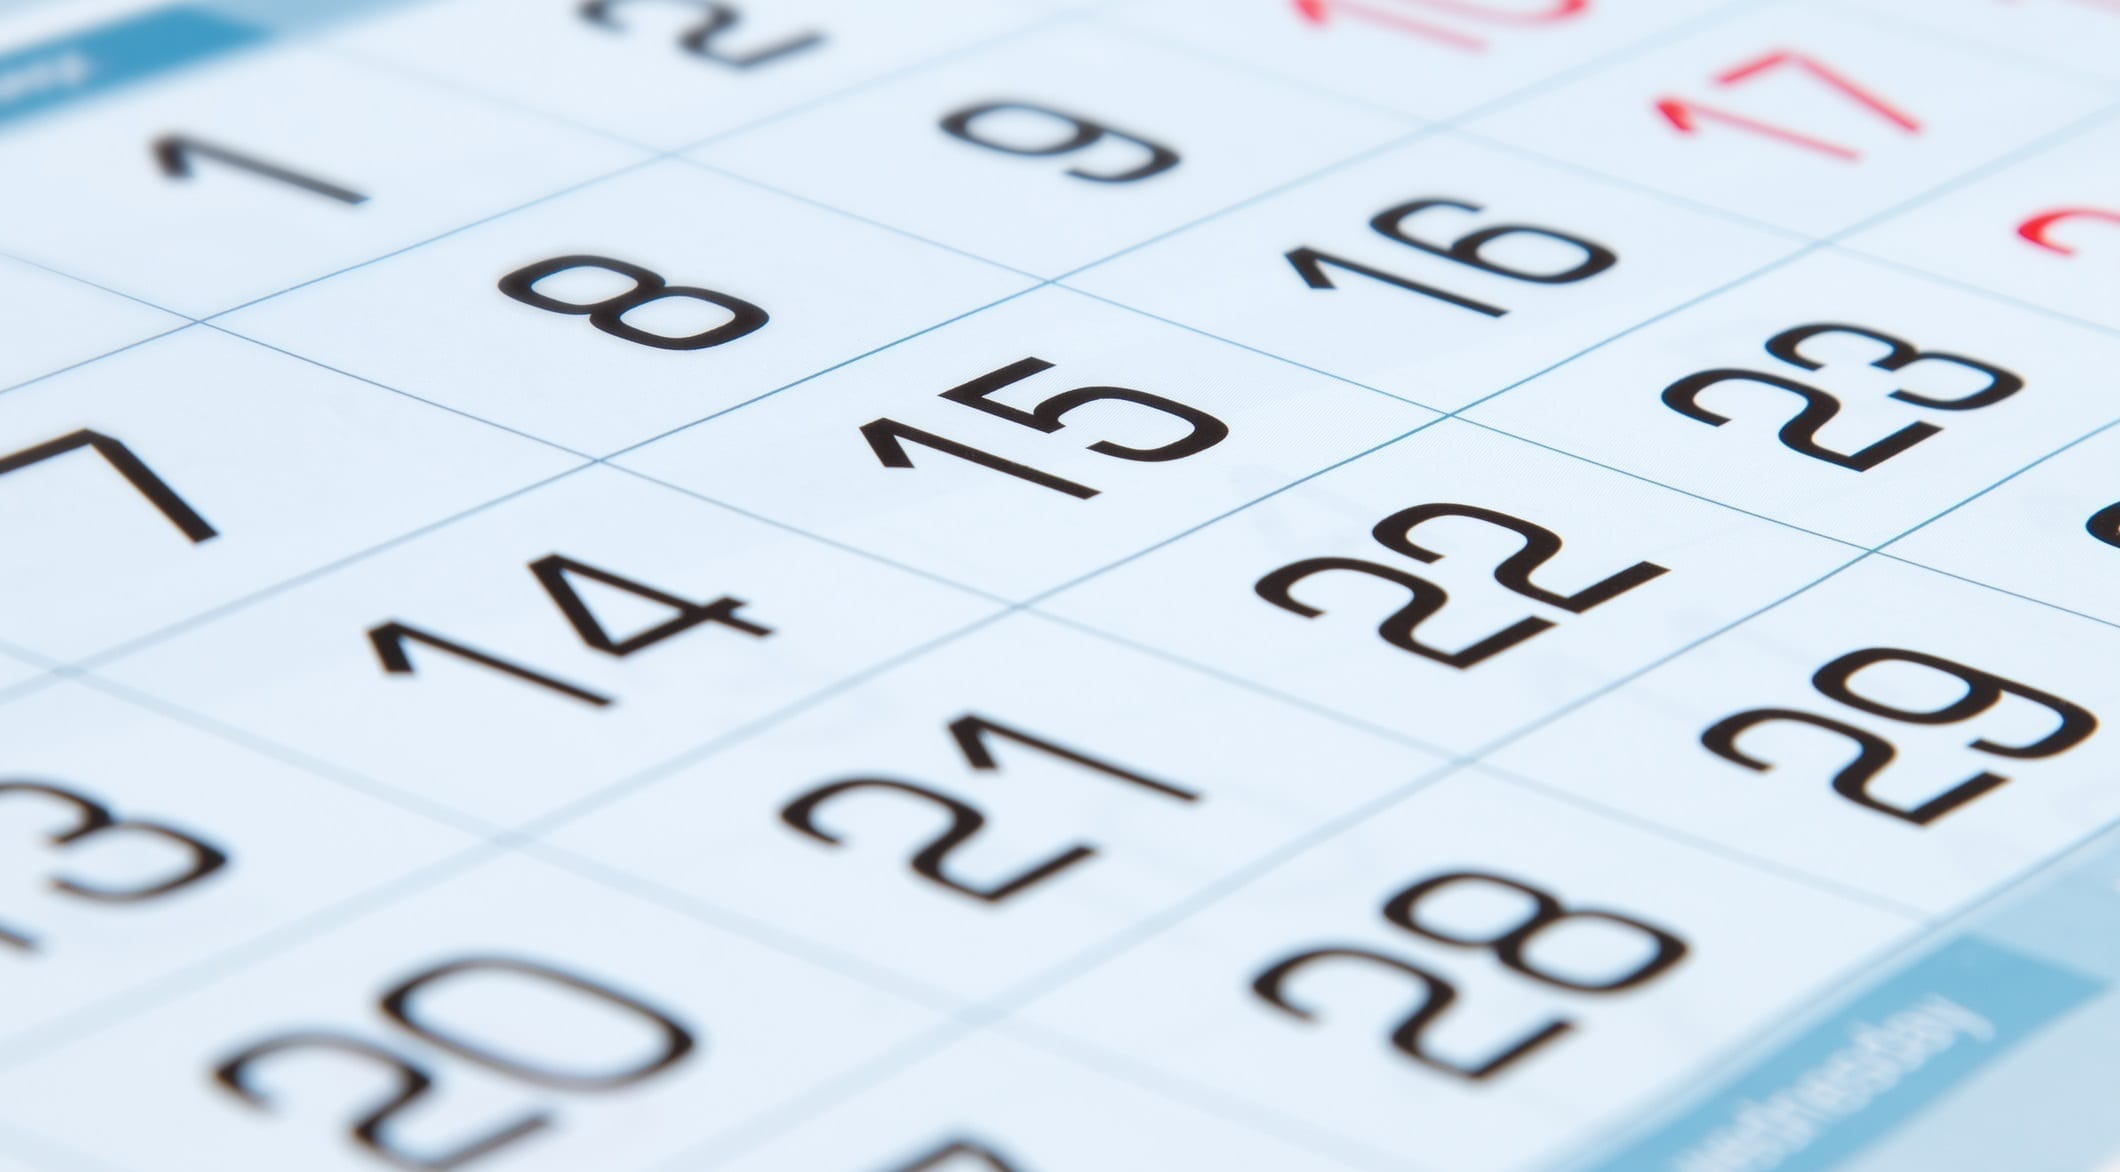 Calendar close up ID 95262702 © Fortton | Dreamstime.com